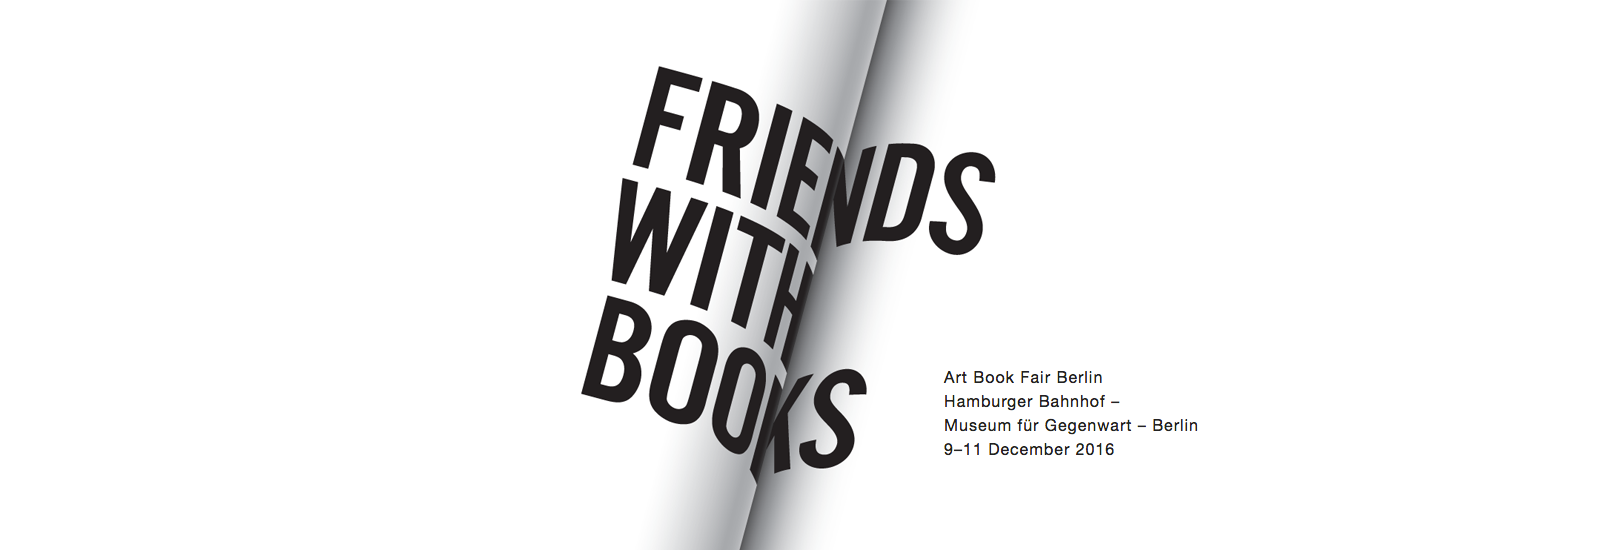 Hamburger Bahnhof | FRIENDS WITH BOOKS – ART BOOK FAIR BERLIN 2016